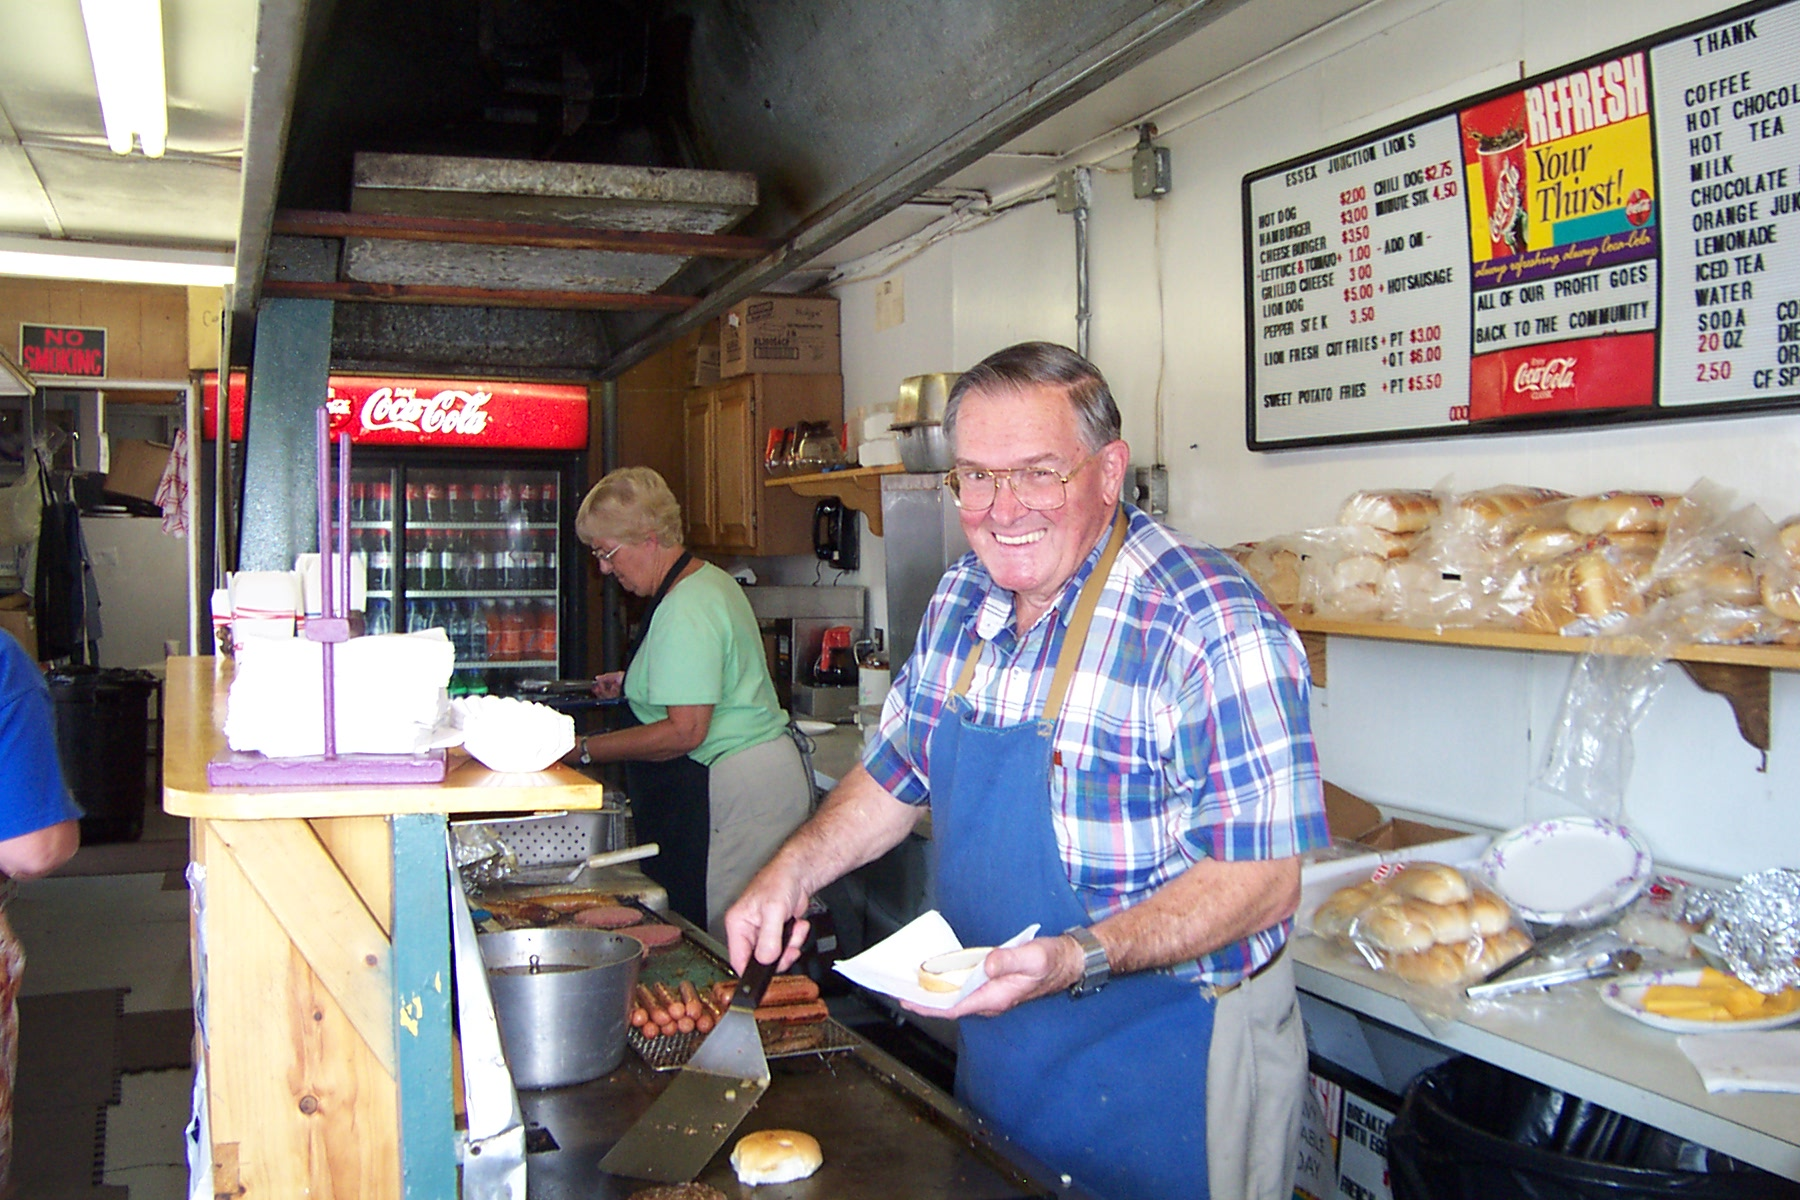 Wes Bristol was very busy cooking at the grill for the Lion's Club and seemed to enjoy his work.  Met Henry Sisters on my way out of the fair and he was coming in to work his 4-hour shift at the Lions Club Food Booth - 2007-08-31 004